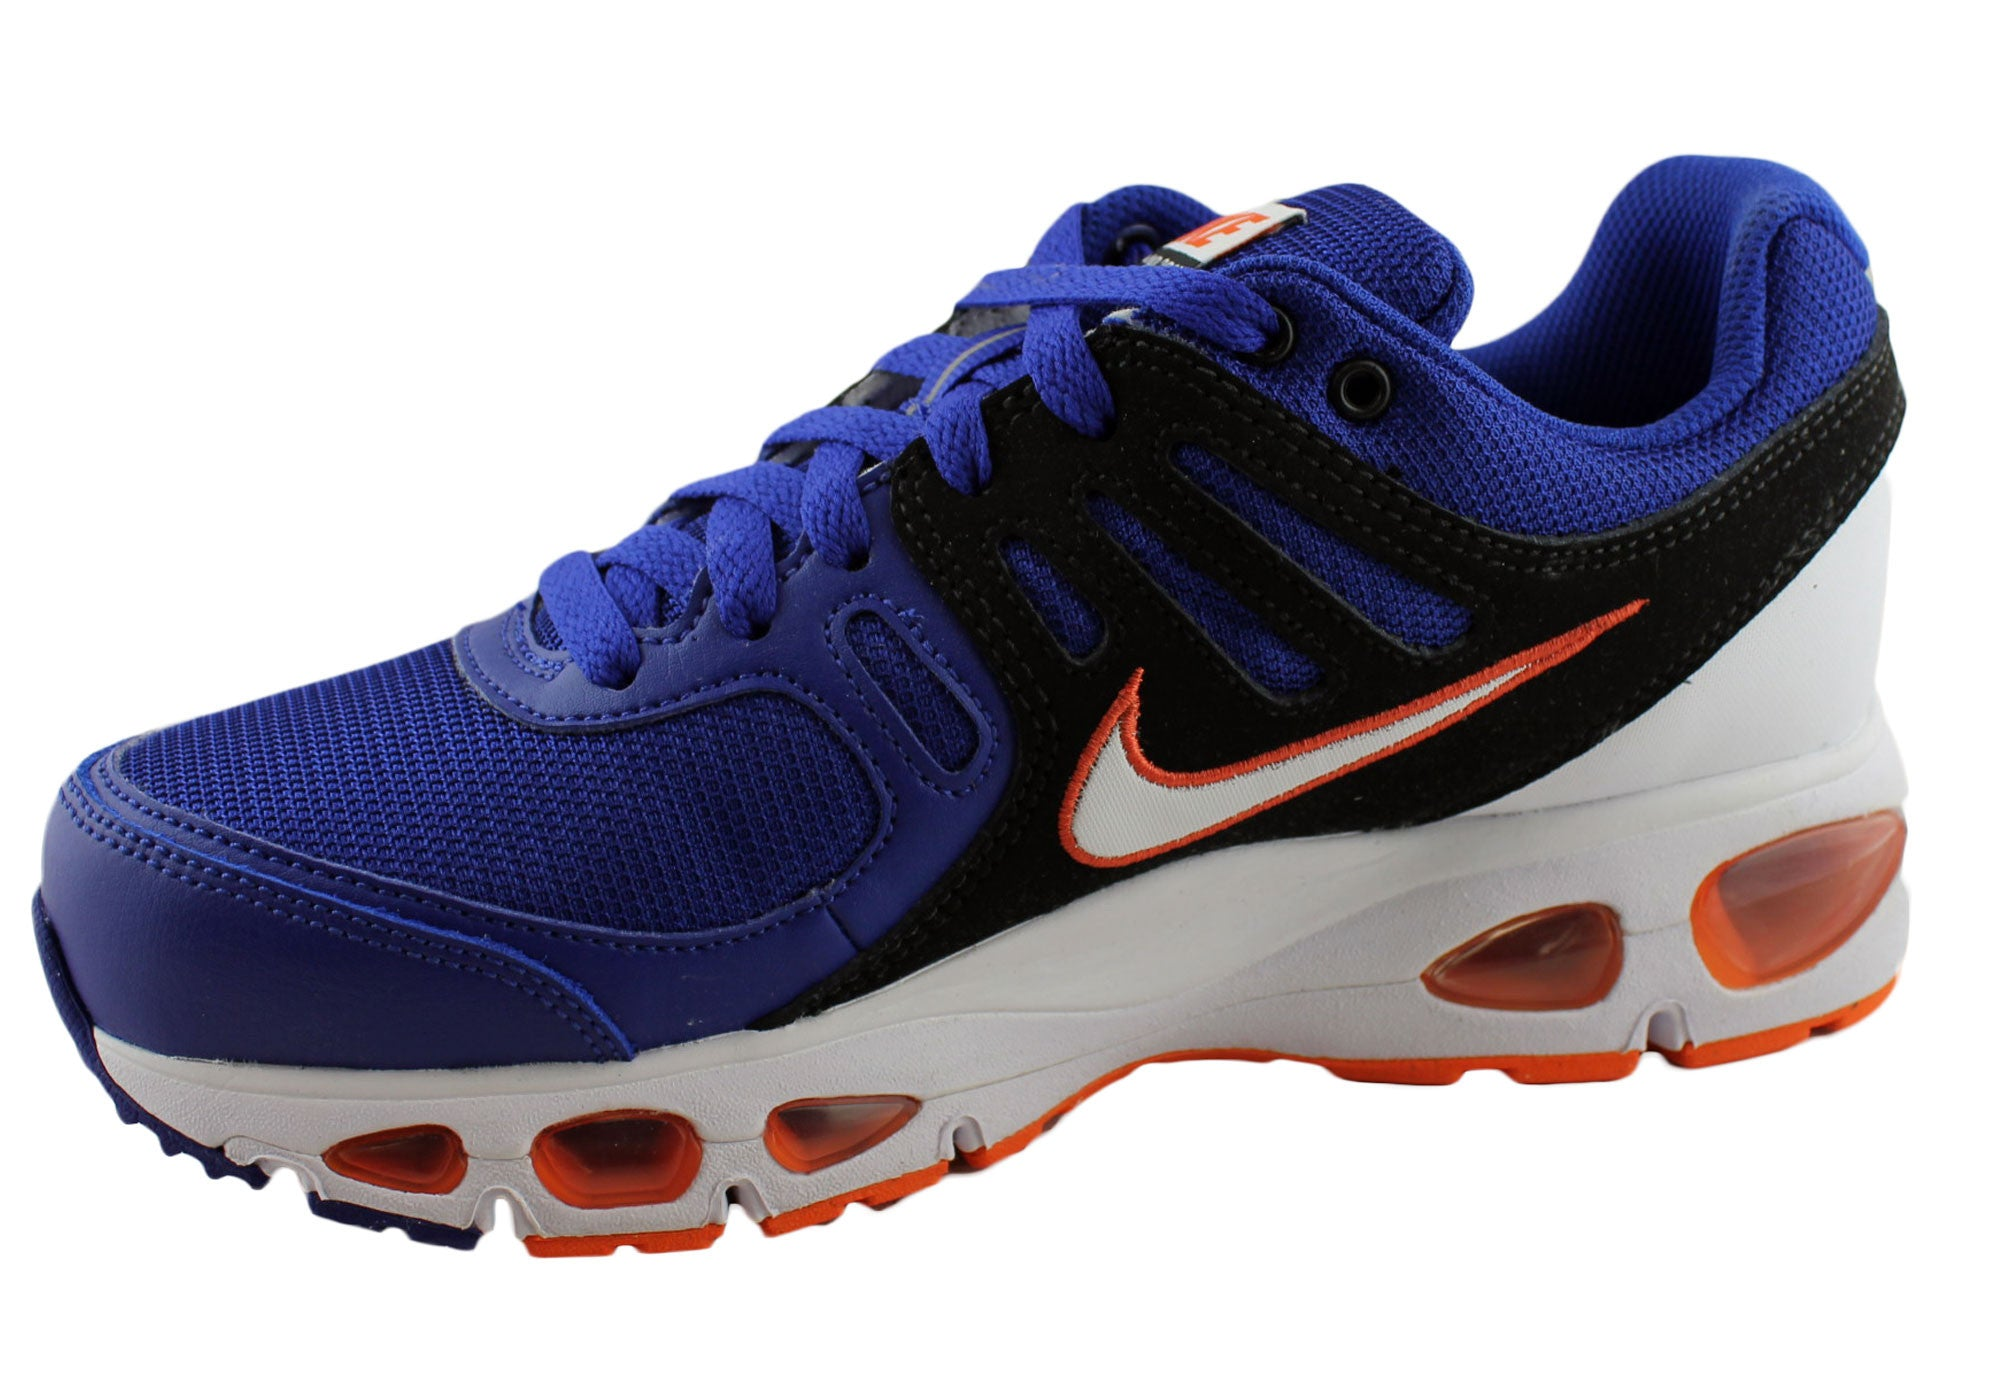 finest selection 98b58 18653 Nike Tailwind 2010 (GS) Older Kids Sneakers | Brand House Direct